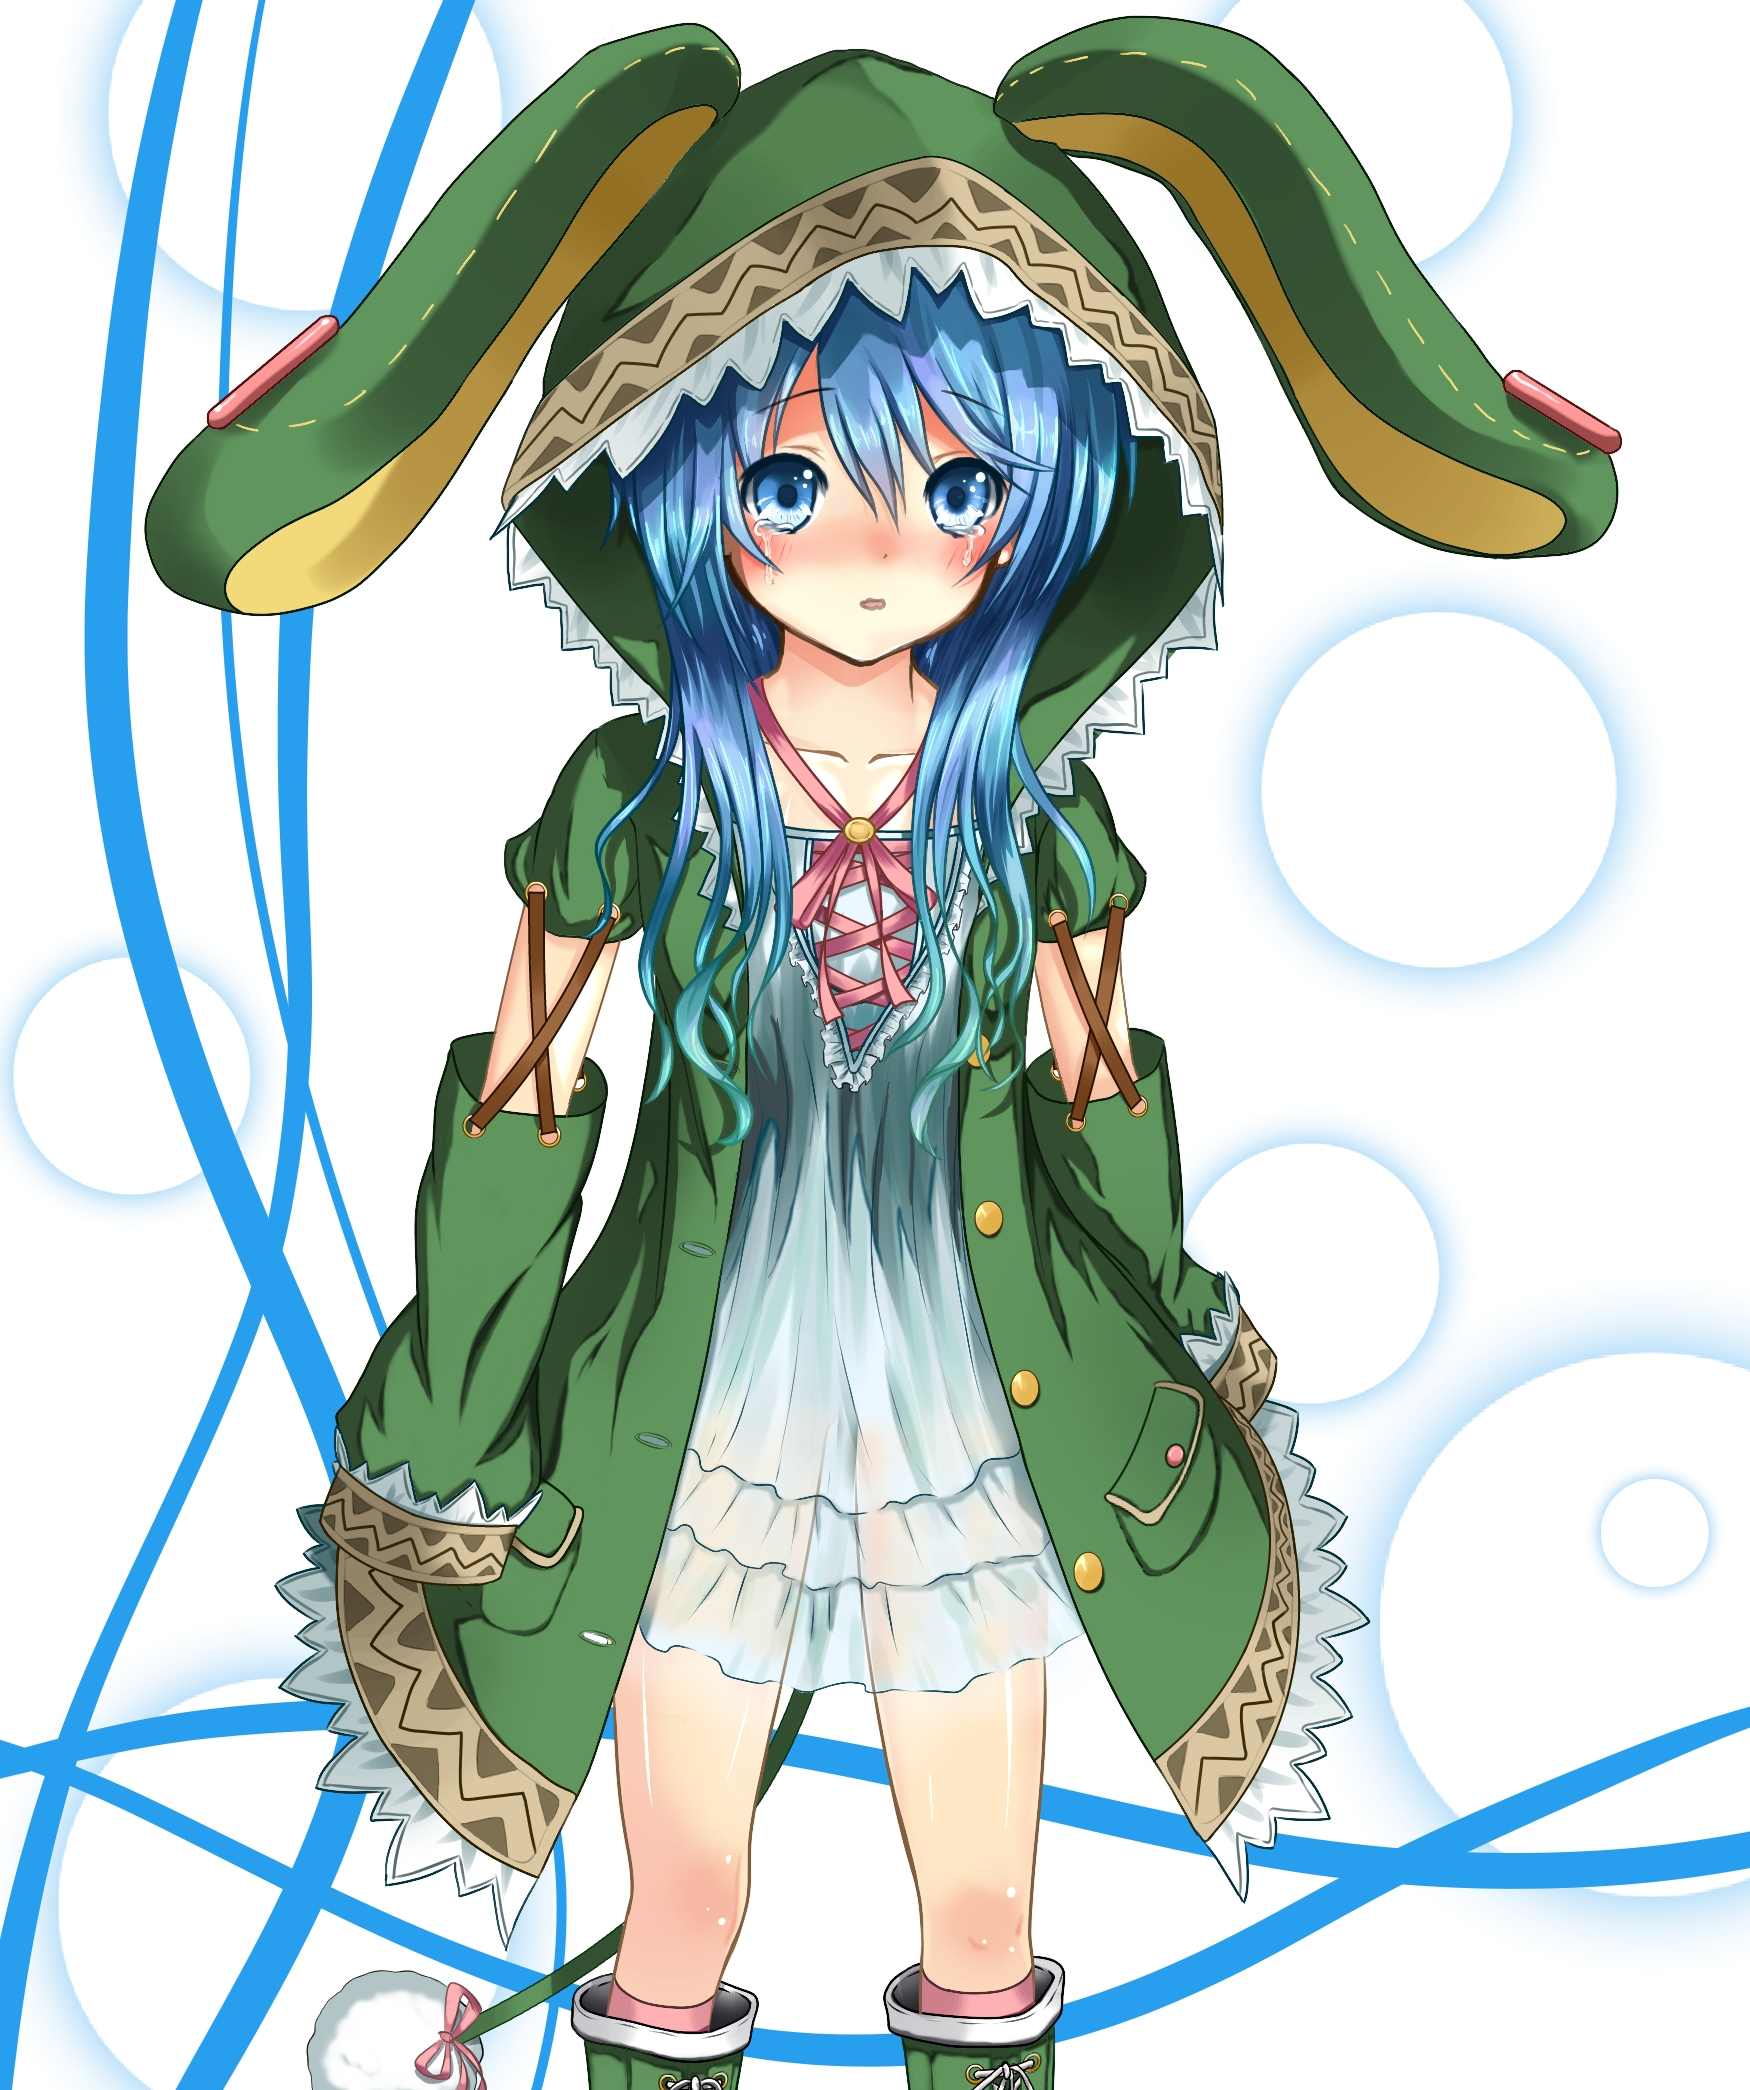 Date A Live  page 11 of 11 - Zerochan Anime Image Board